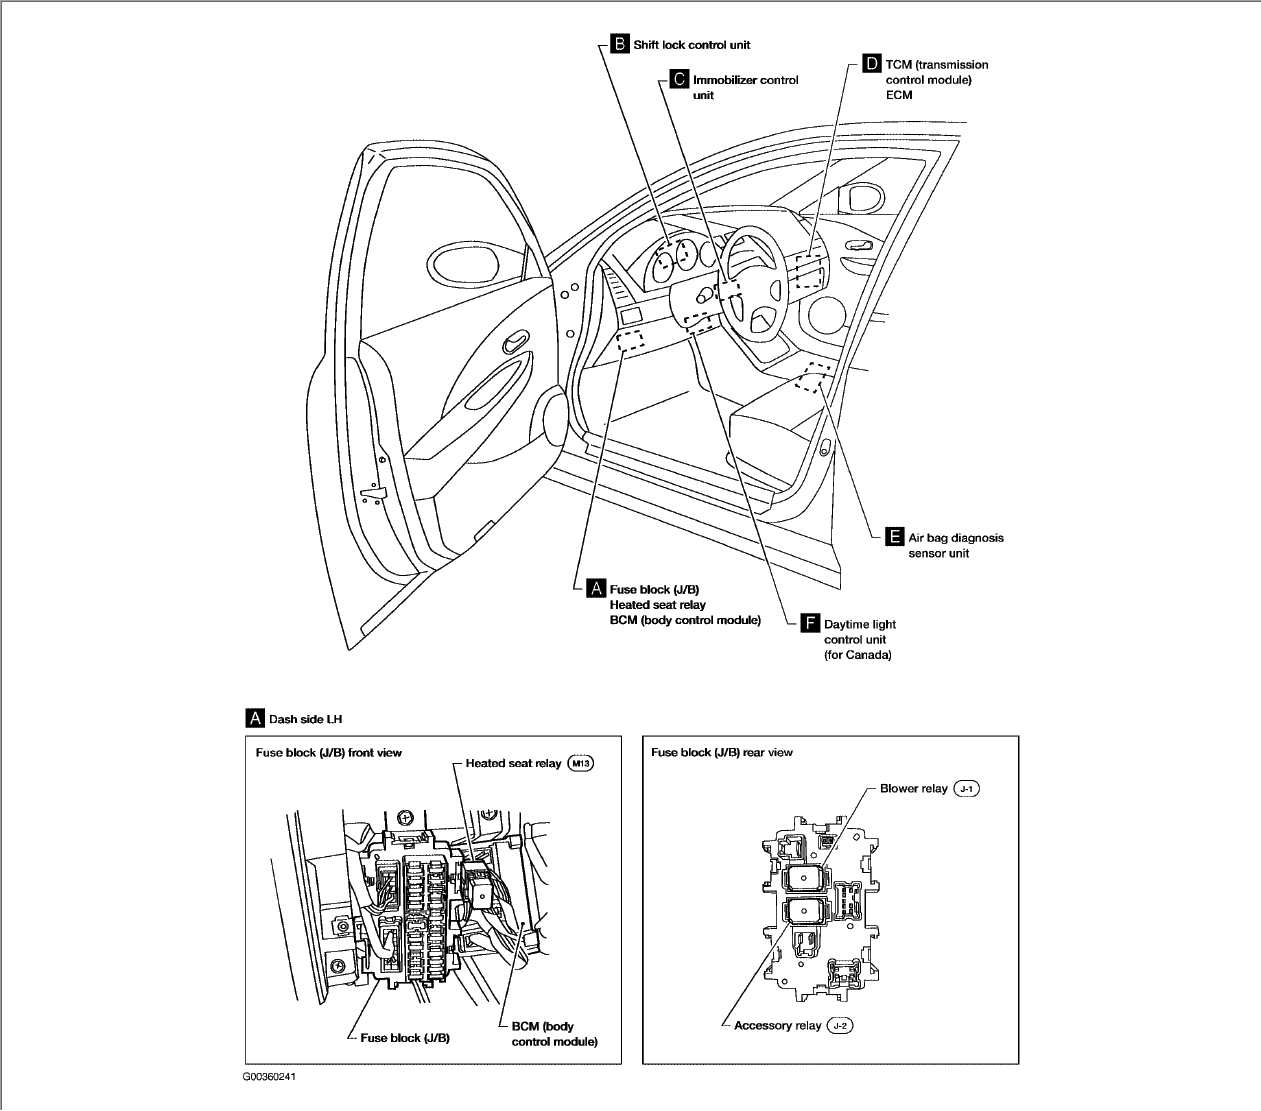 2002 Nissan Sentra 1 8 Wiring Diagram in addition 1x8yv 05 Nissan Altima Dealer Says Short Harness as well 3ceg5 No Voltage Fuel Pump 2001 Nissan Exterra further Nissan Frontier Trailer Brake Wiring Diagram in addition 4a912 Nissan Datsun Titan Pro 4x 2006 Nissan Titan Pick Wont. on 2004 nissan pathfinder fuse box